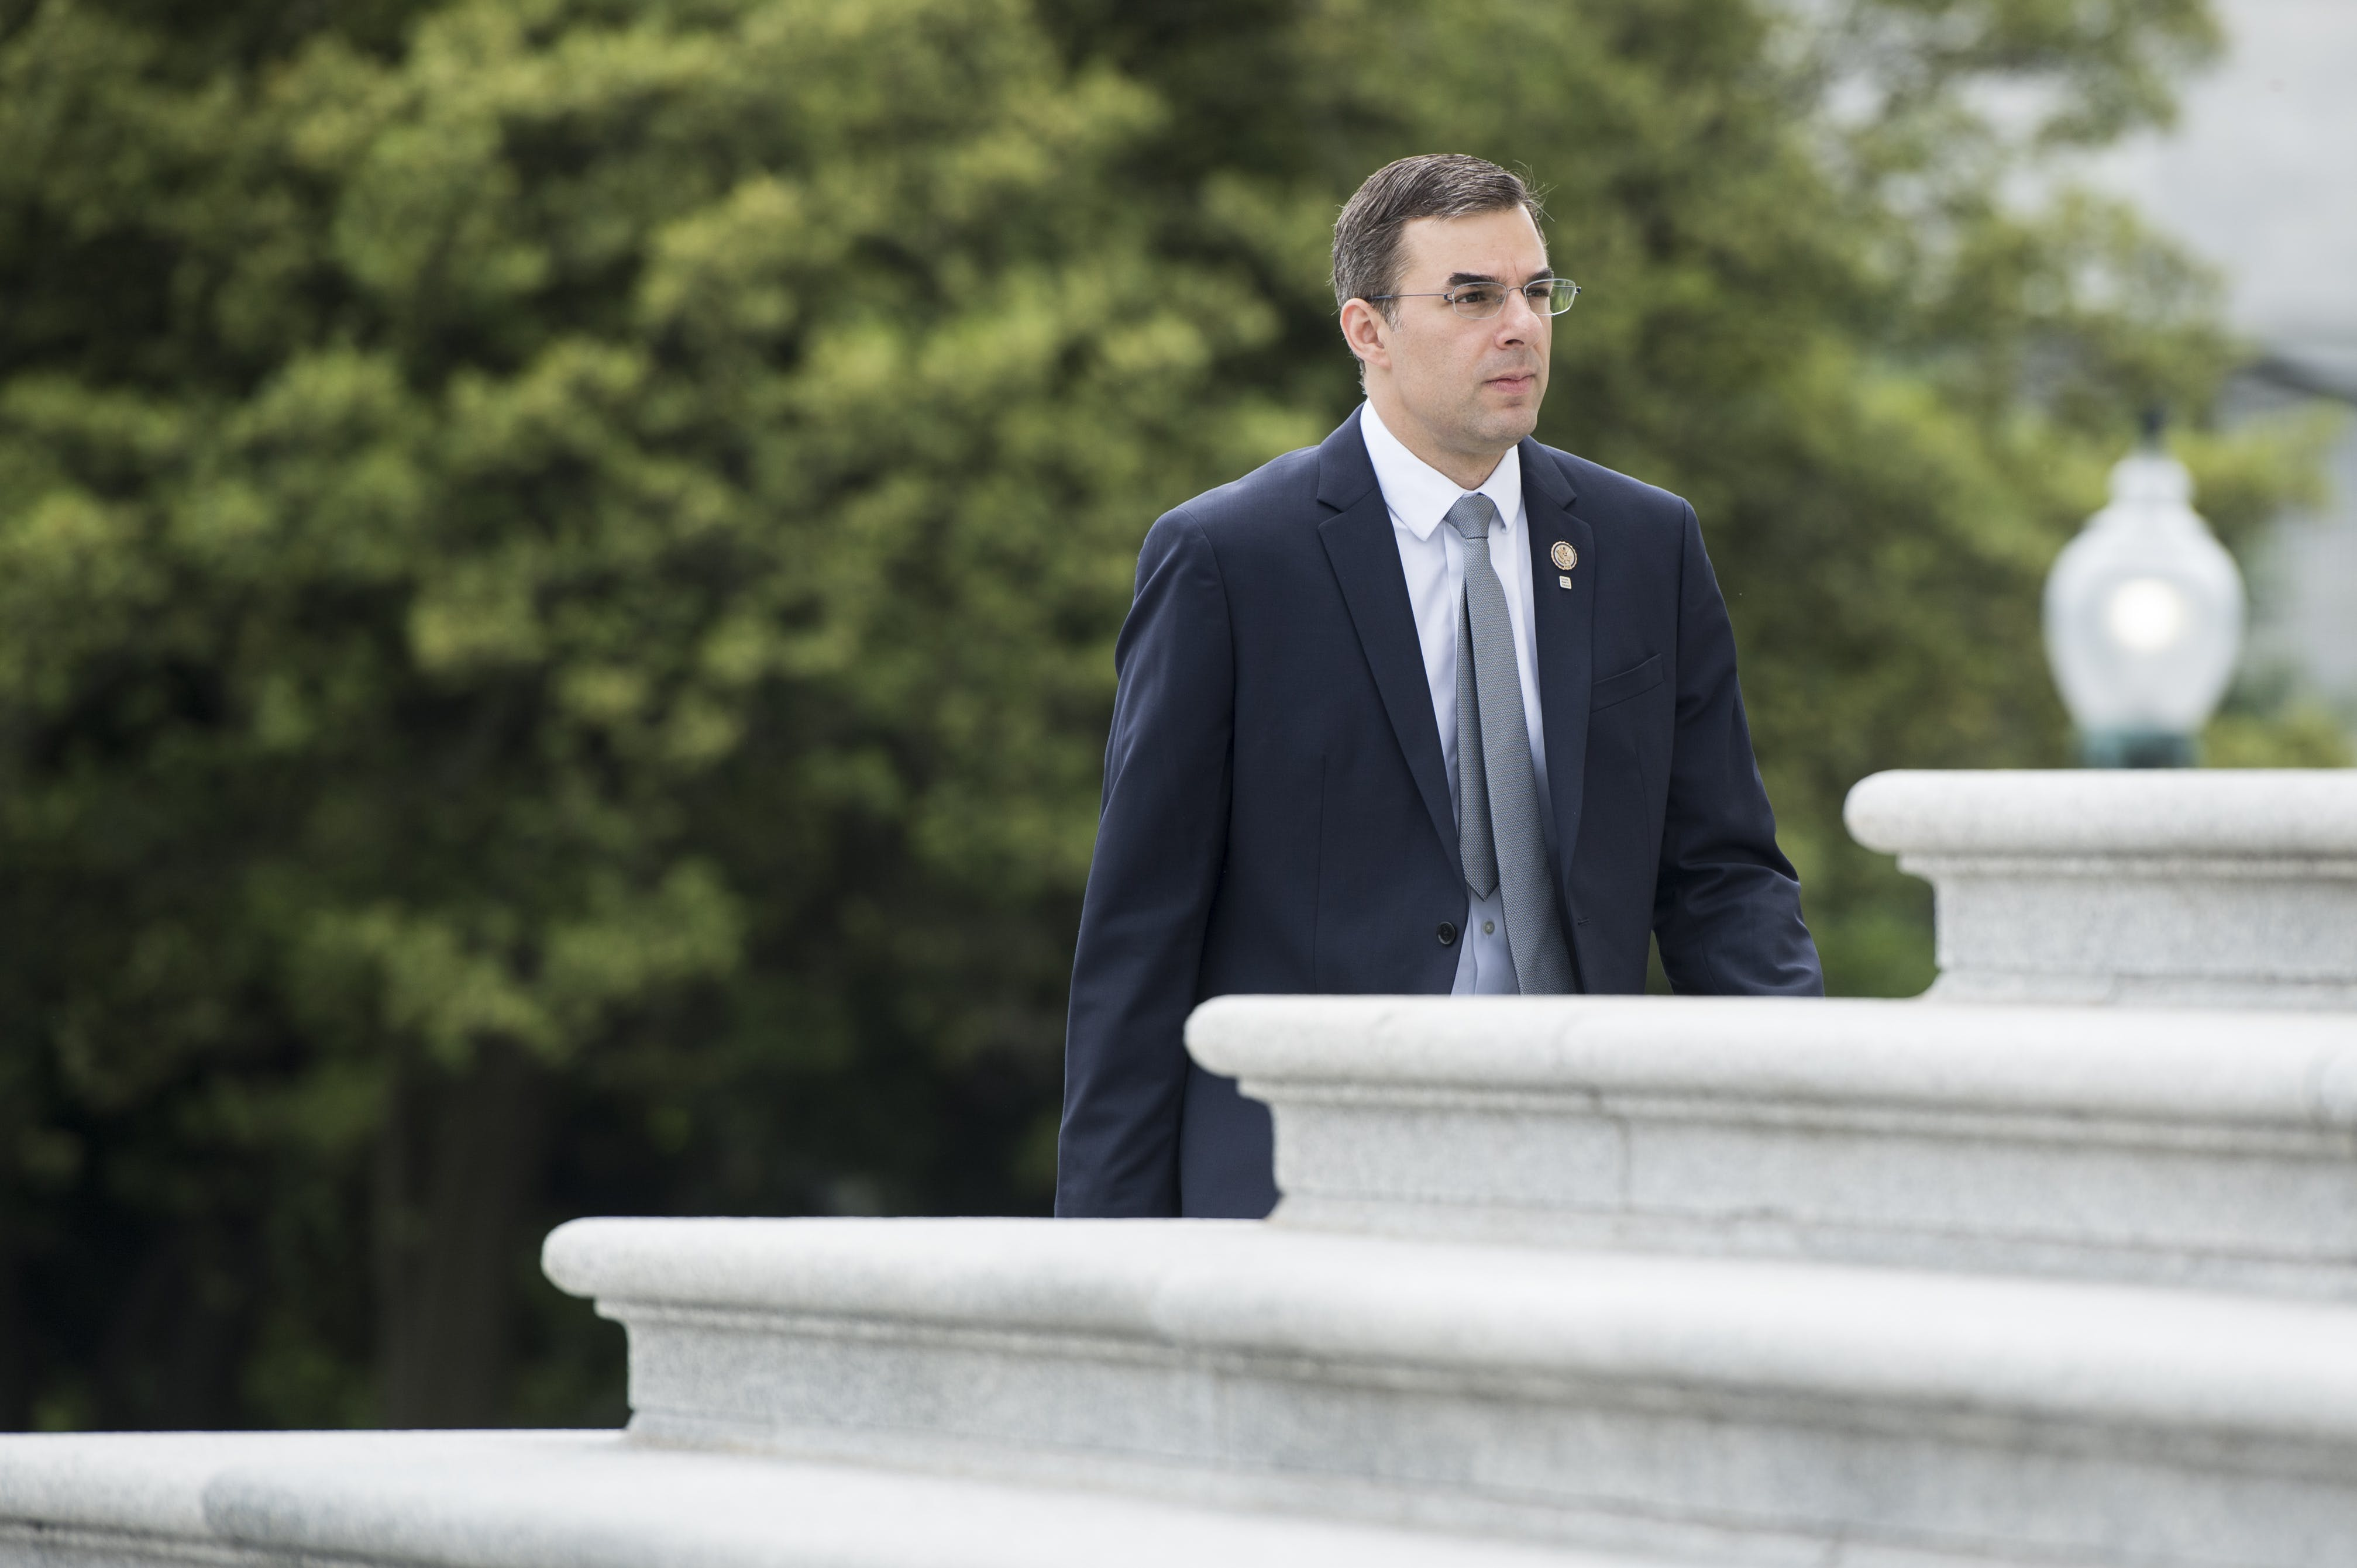 Rep. Justin Amash, R-Mich., walks up the House steps for a vote in the Capitol on Thursday, May 9, 2019. (Photo By Bill Clark/CQ Roll Call via AP Images)